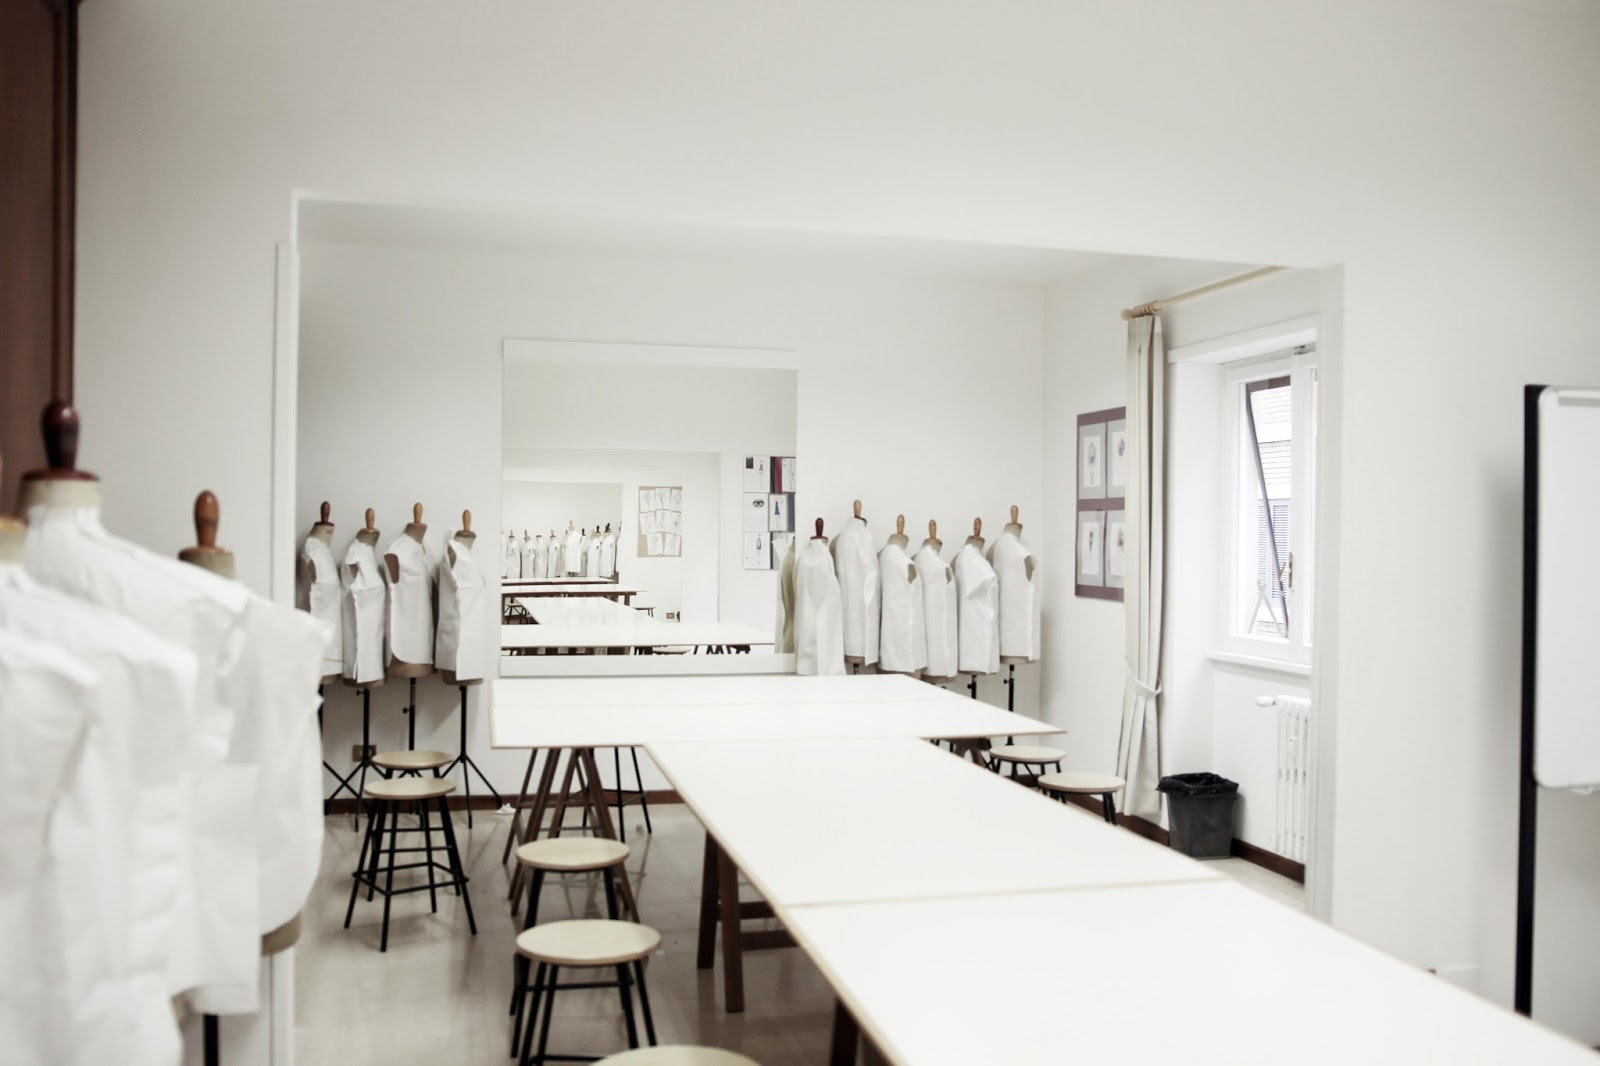 The tailoring laboratory